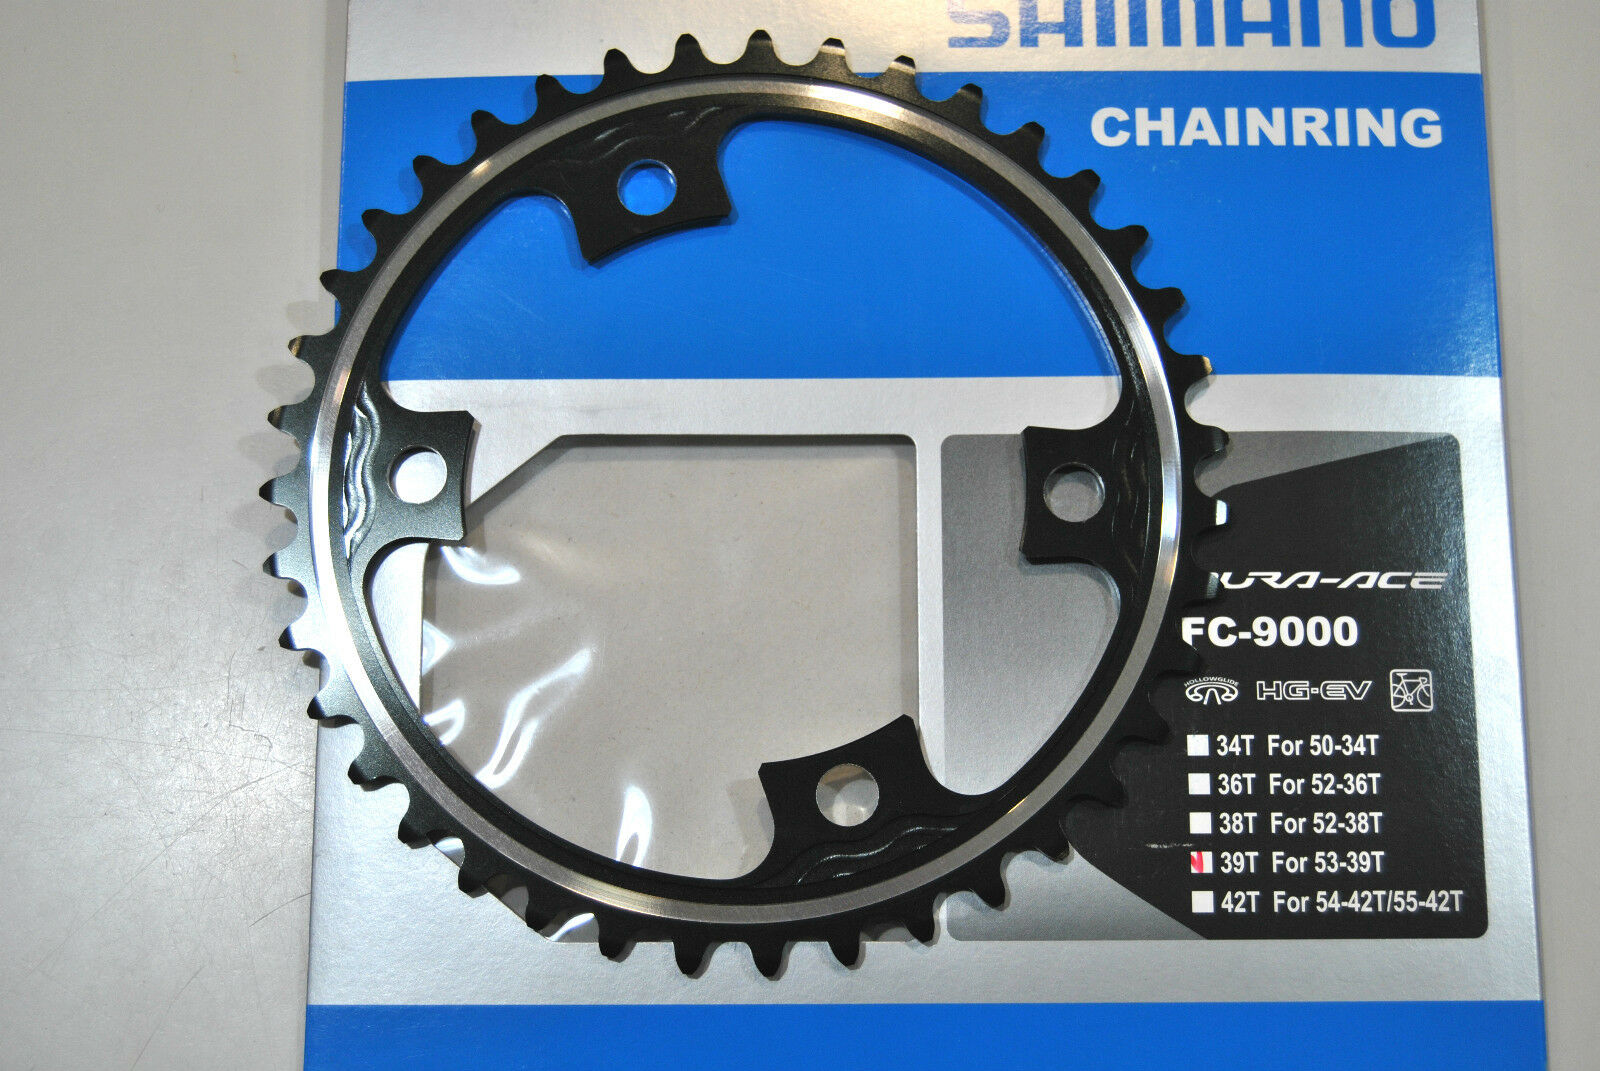 PLATEAU SHIMANO DURA ACE 39T  MD FC-M9000 ( 53x39 ) Plateau SHIMANO 39T MD FC-M9  welcome to order